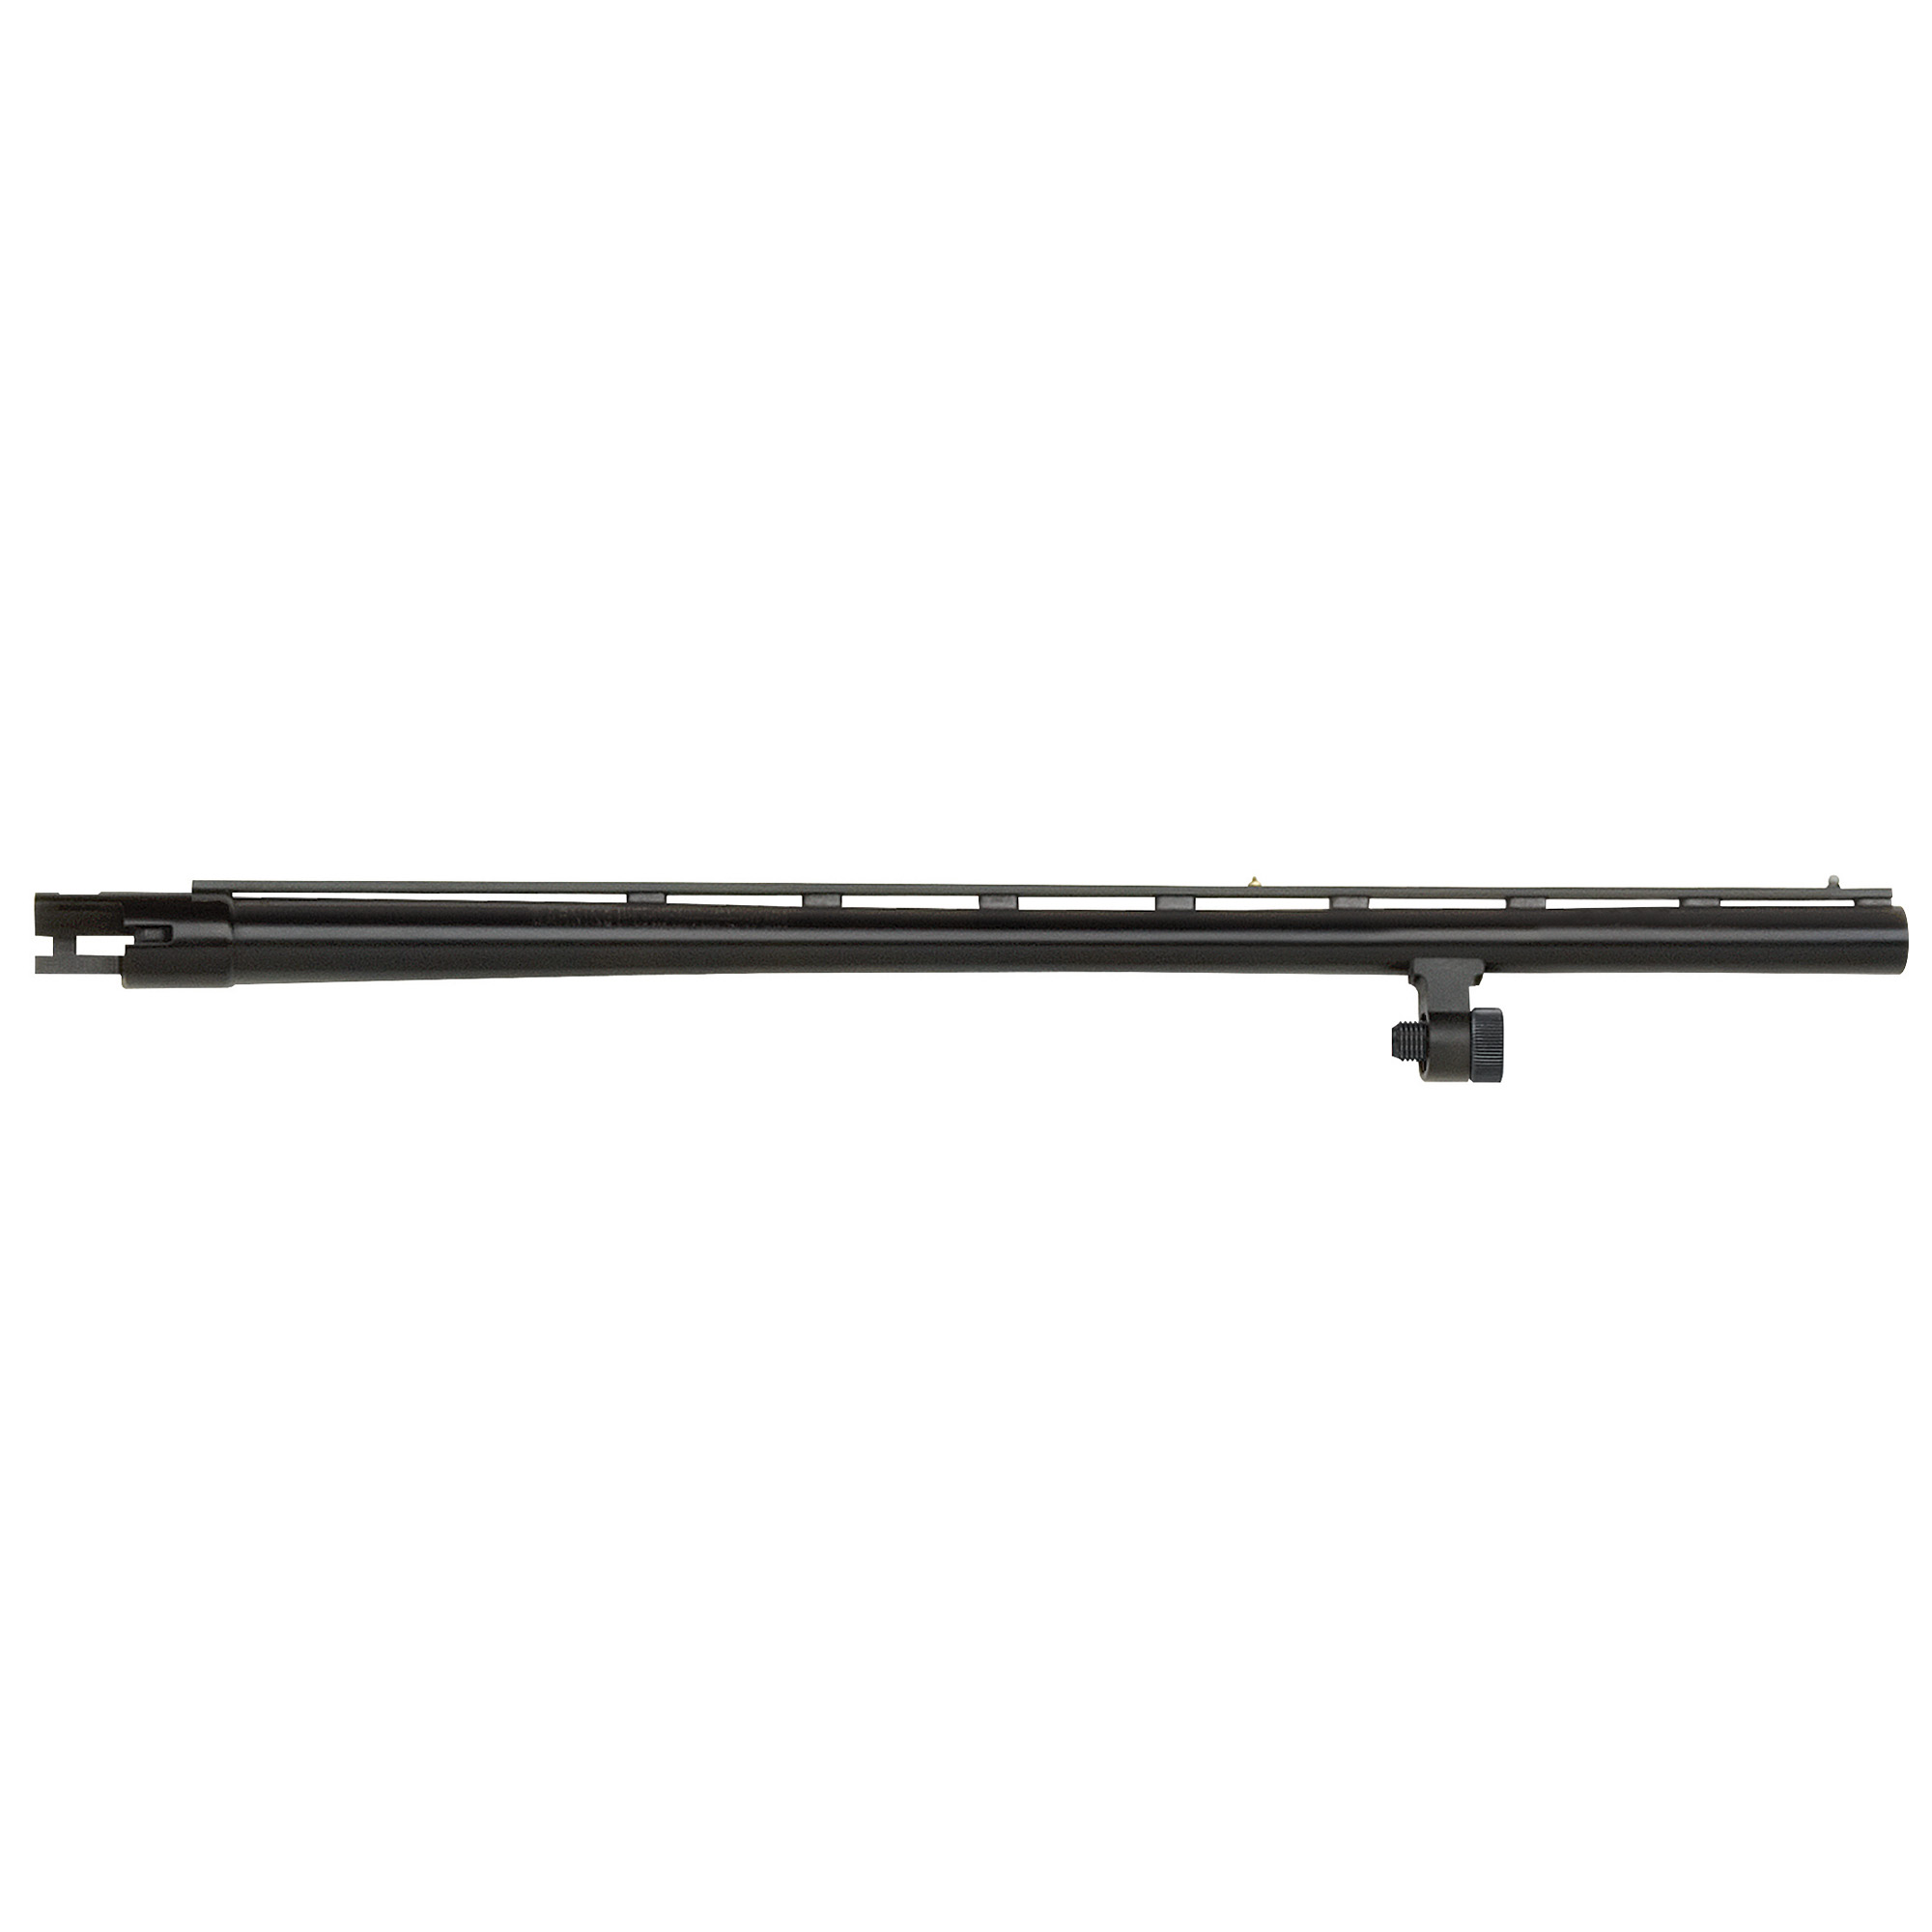 """20"""" All-Purpose barrel with vent rib"""" dual bead sights"""" smoothbore"""" and blued finish. Includes Accu-Choke set (Improved Cylinder"""" Modified"""" Full) and choke tube wrench. Compatible with 12 Gauge Mossberg 500 and Maverick 88 6-shot models."""